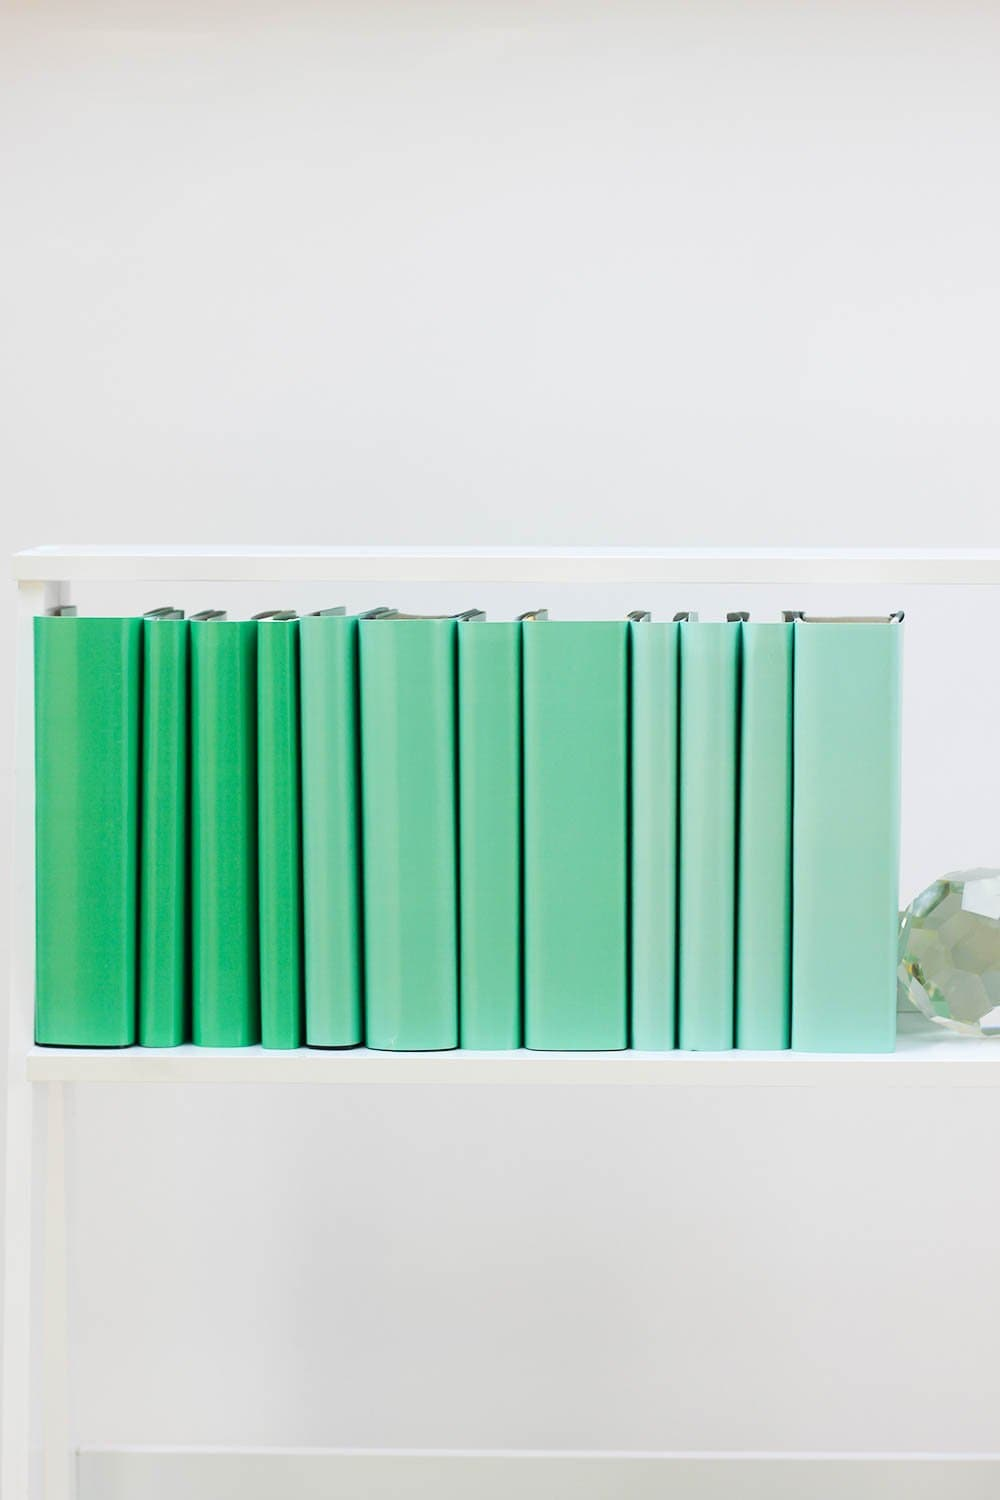 Set of styled green books made with green book covers